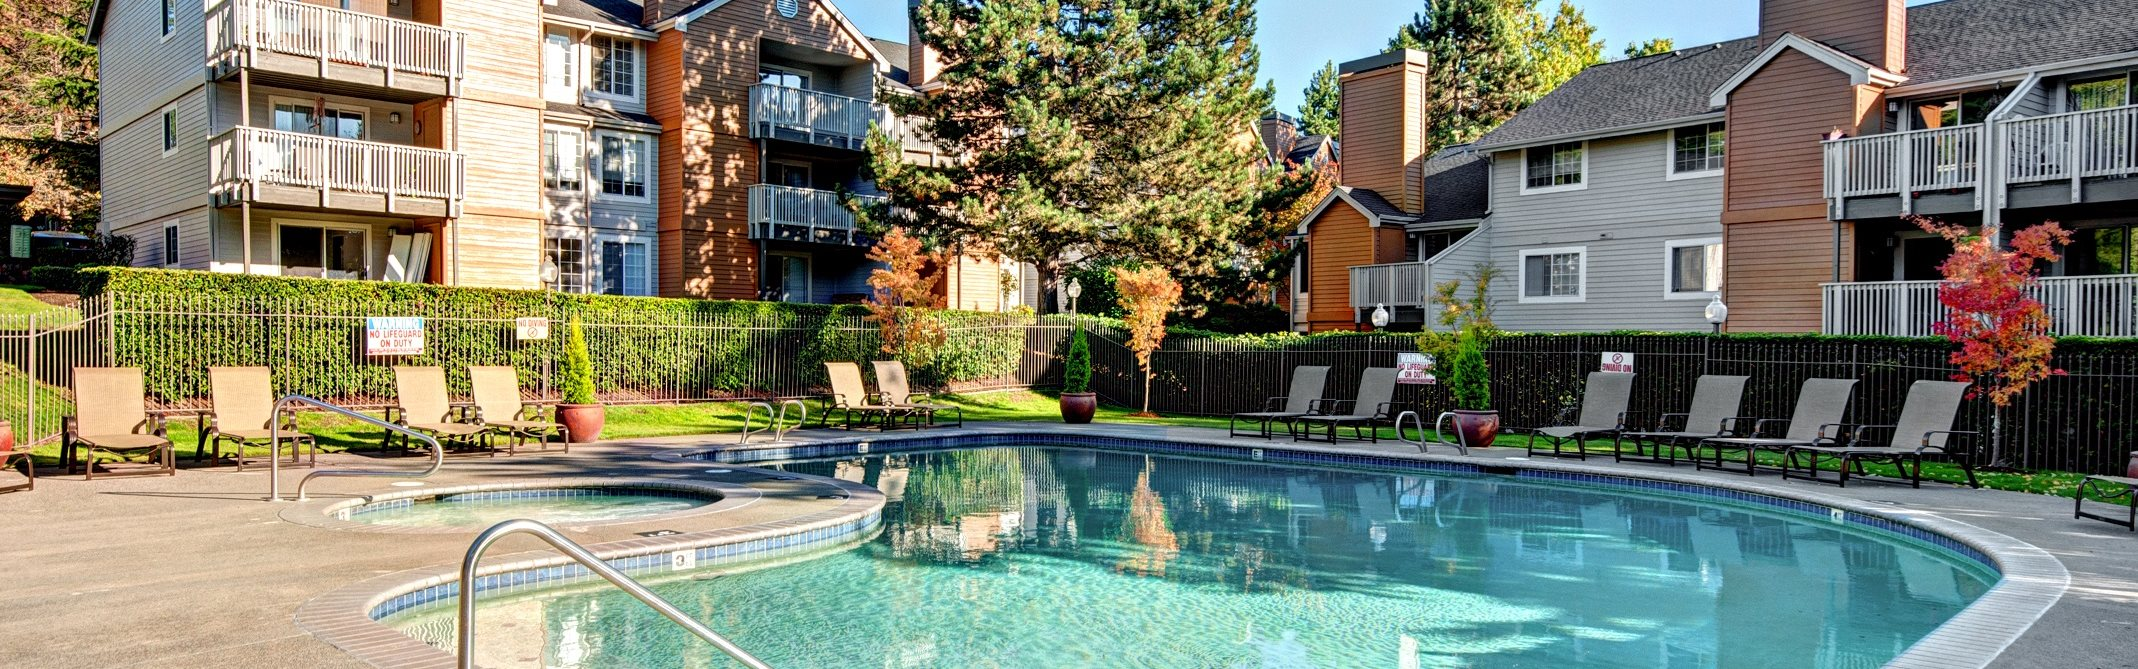 Ridgegate Apartments_Kent WA_Community Pool and Spa Area